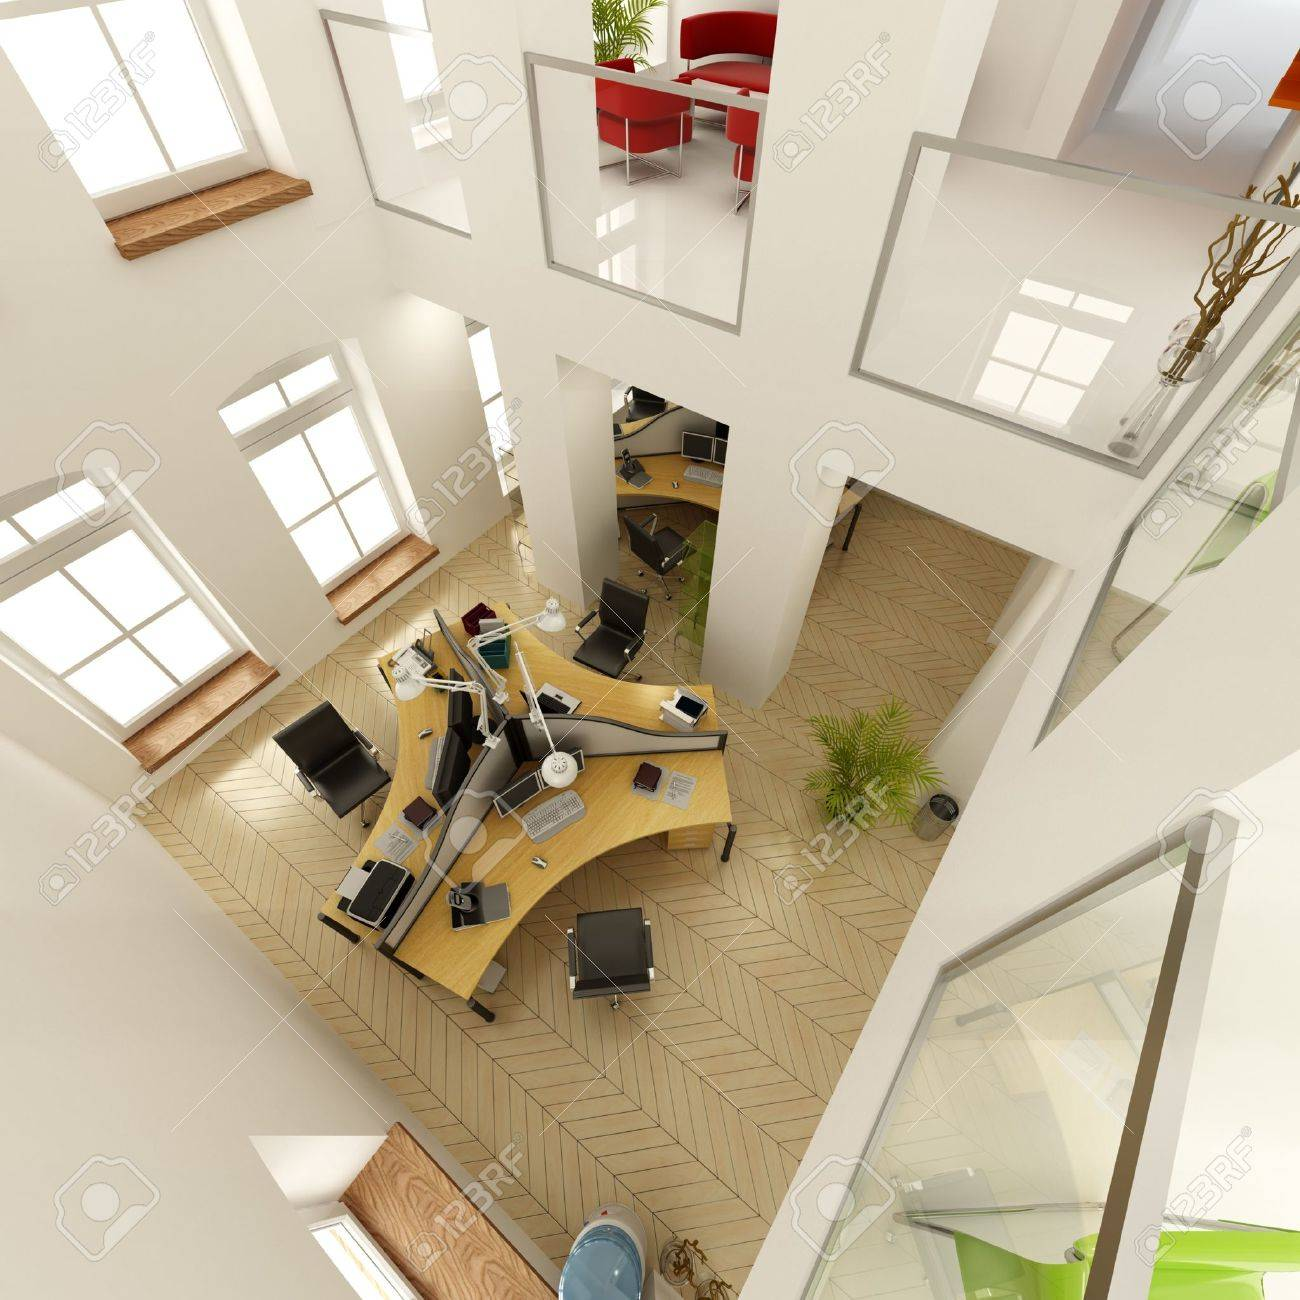 3D Rendering Of An Aerial View A Luxurious Office Stock Photo